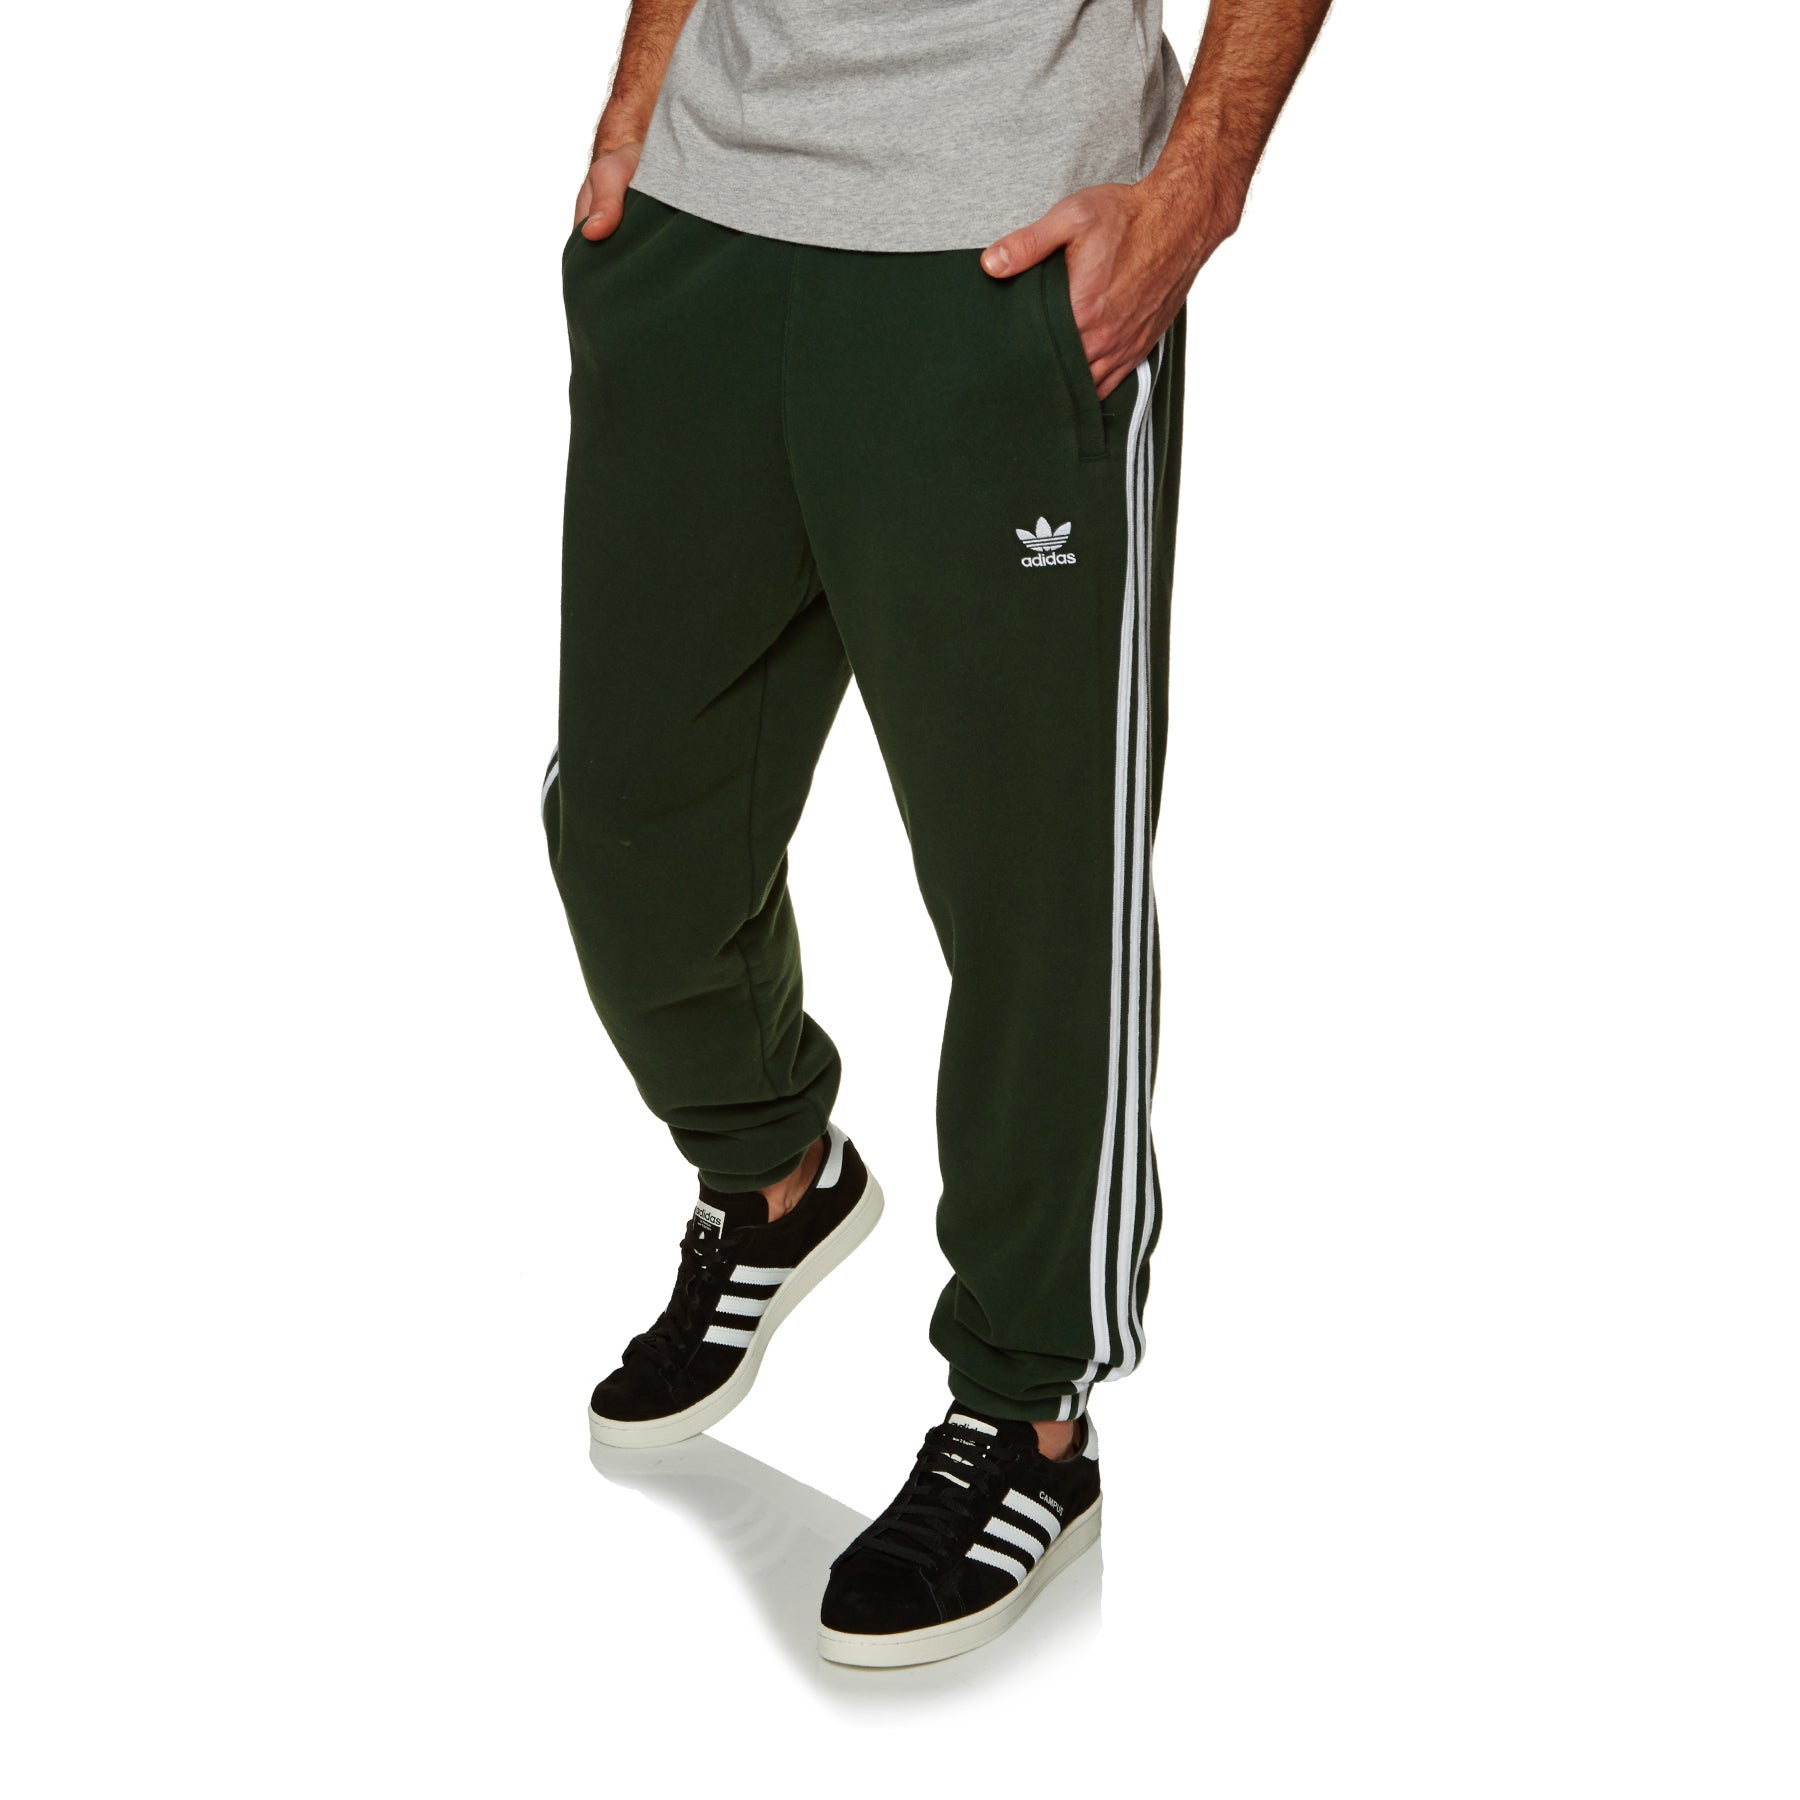 Adidas Originals 3 Stripe Loungewear